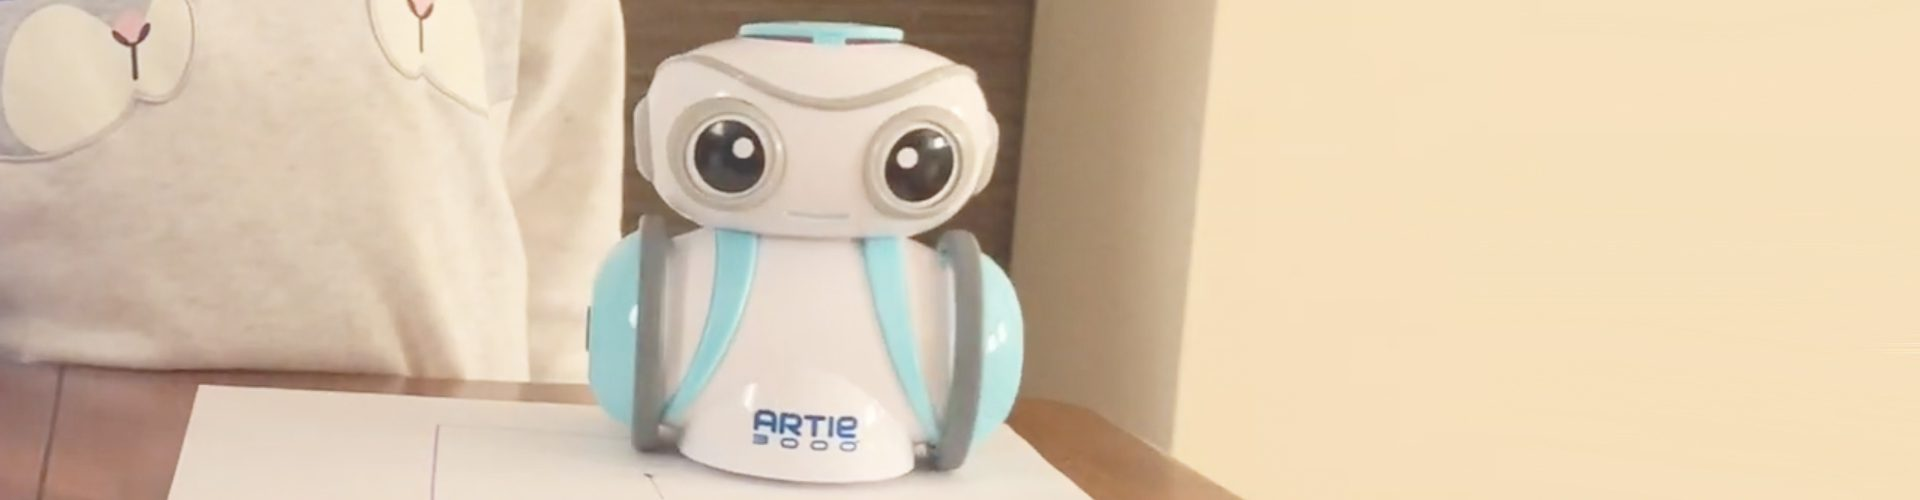 Artie 3000 Drawing and Coding Robot